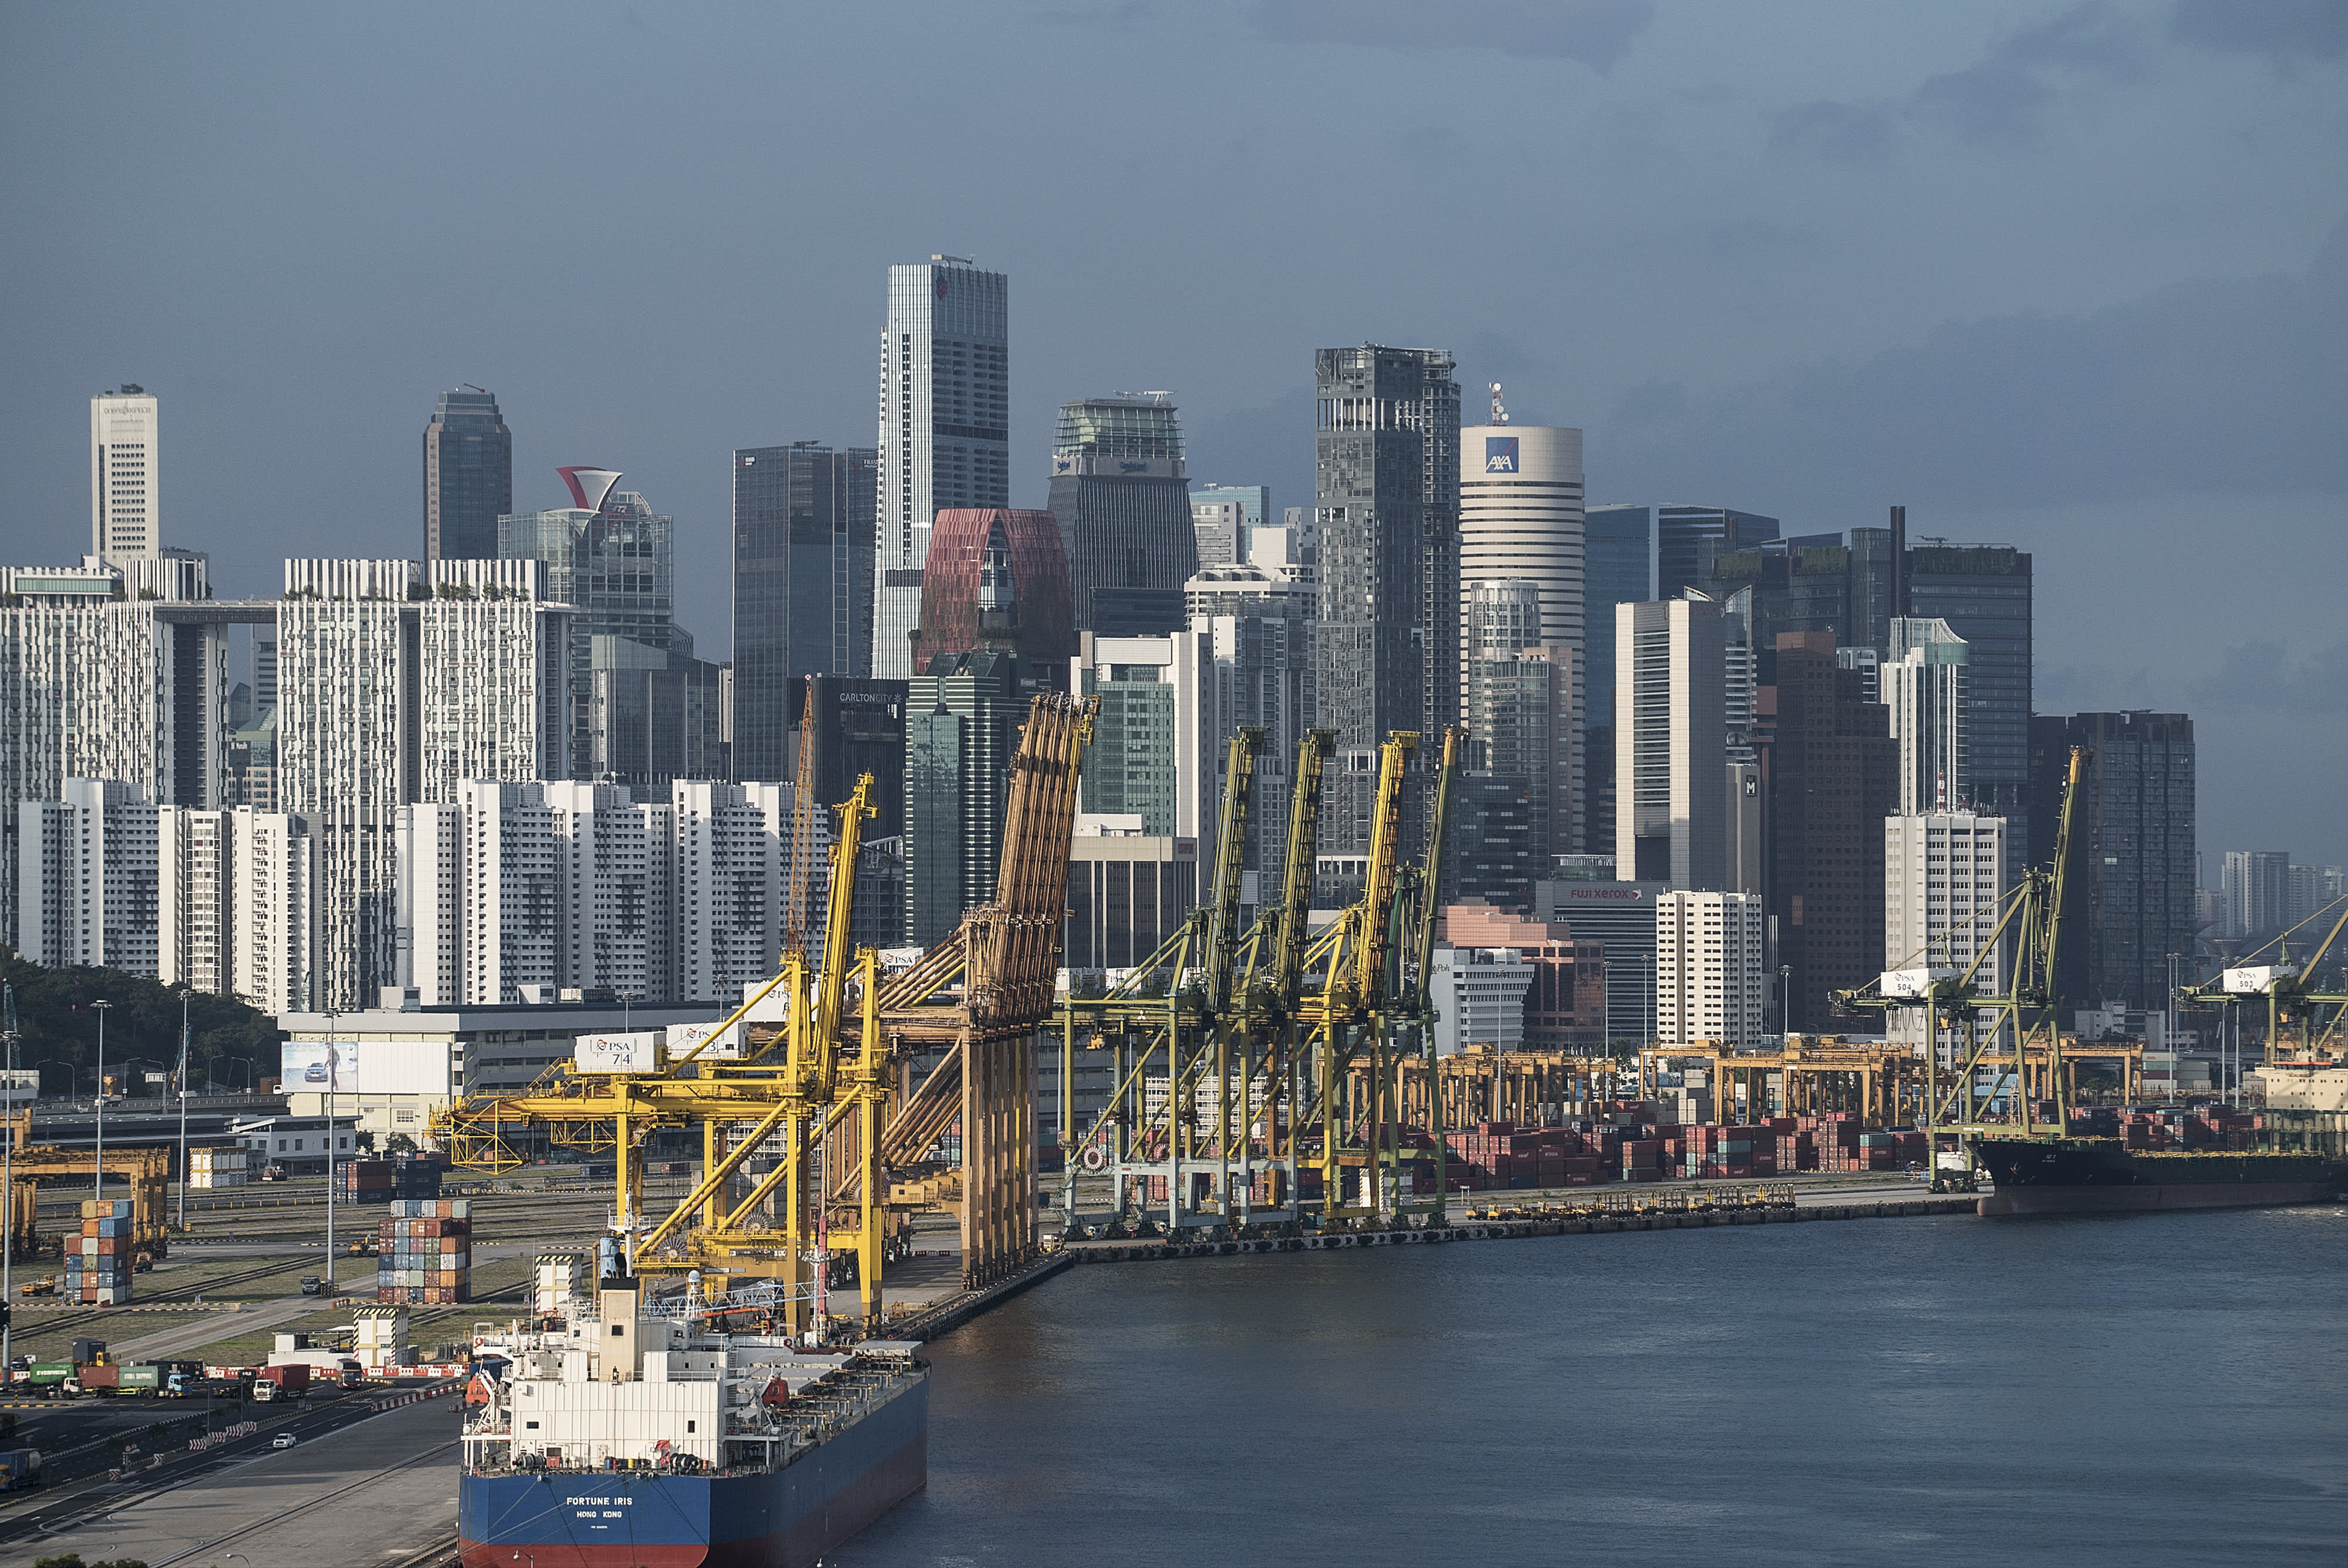 Global recession is a top concern among Asia Pacific business leaders, JPMorgan survey shows